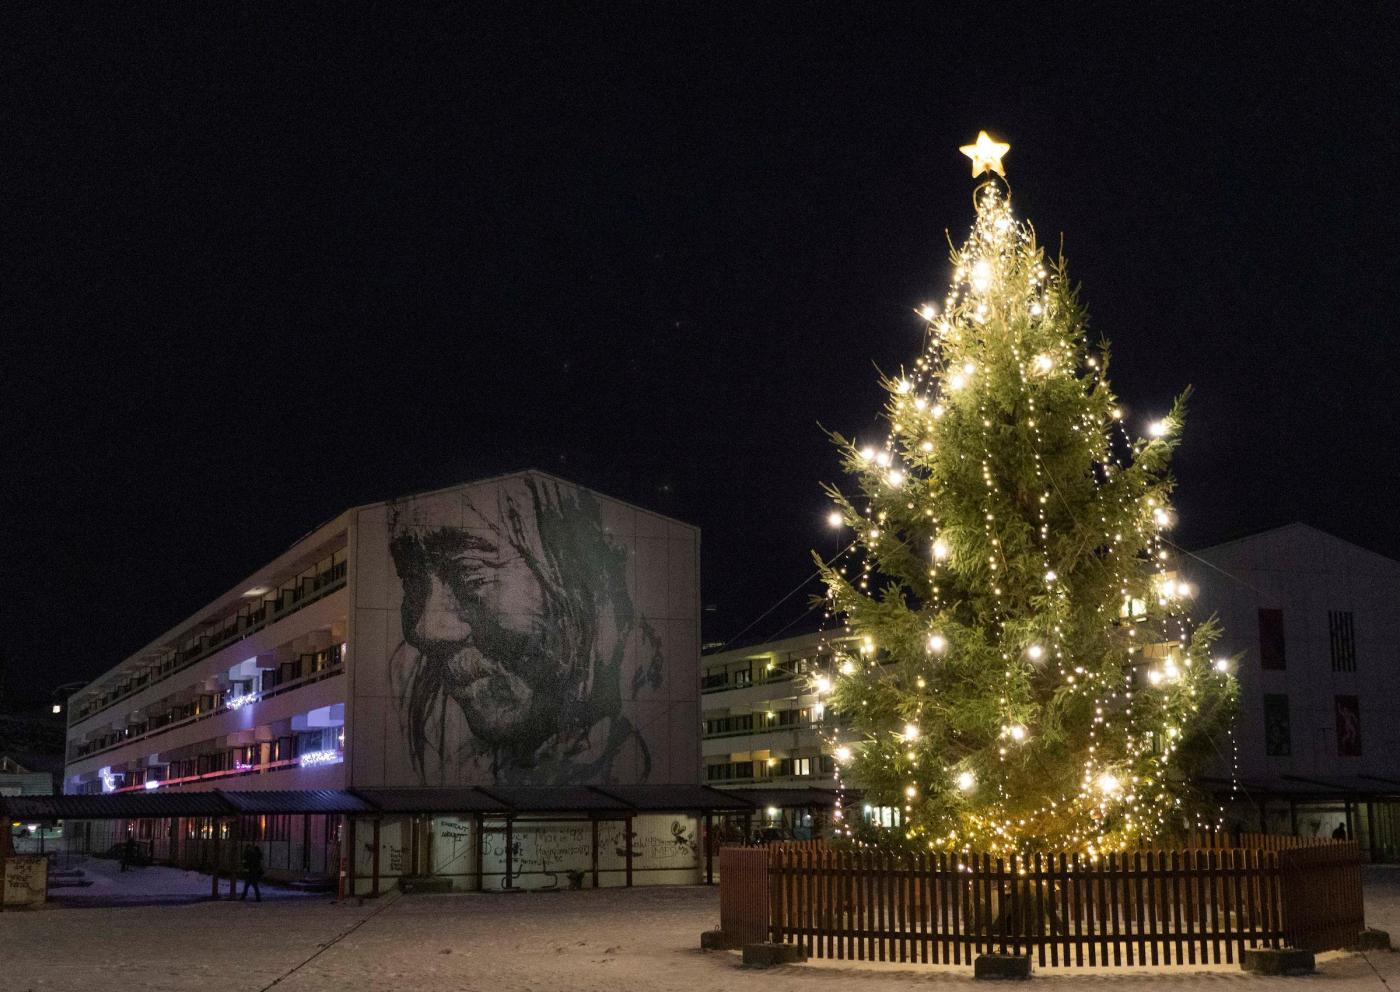 Christmas Tree in Nuuk. Photo by Stine Selmer Andersen - Visit Greenland